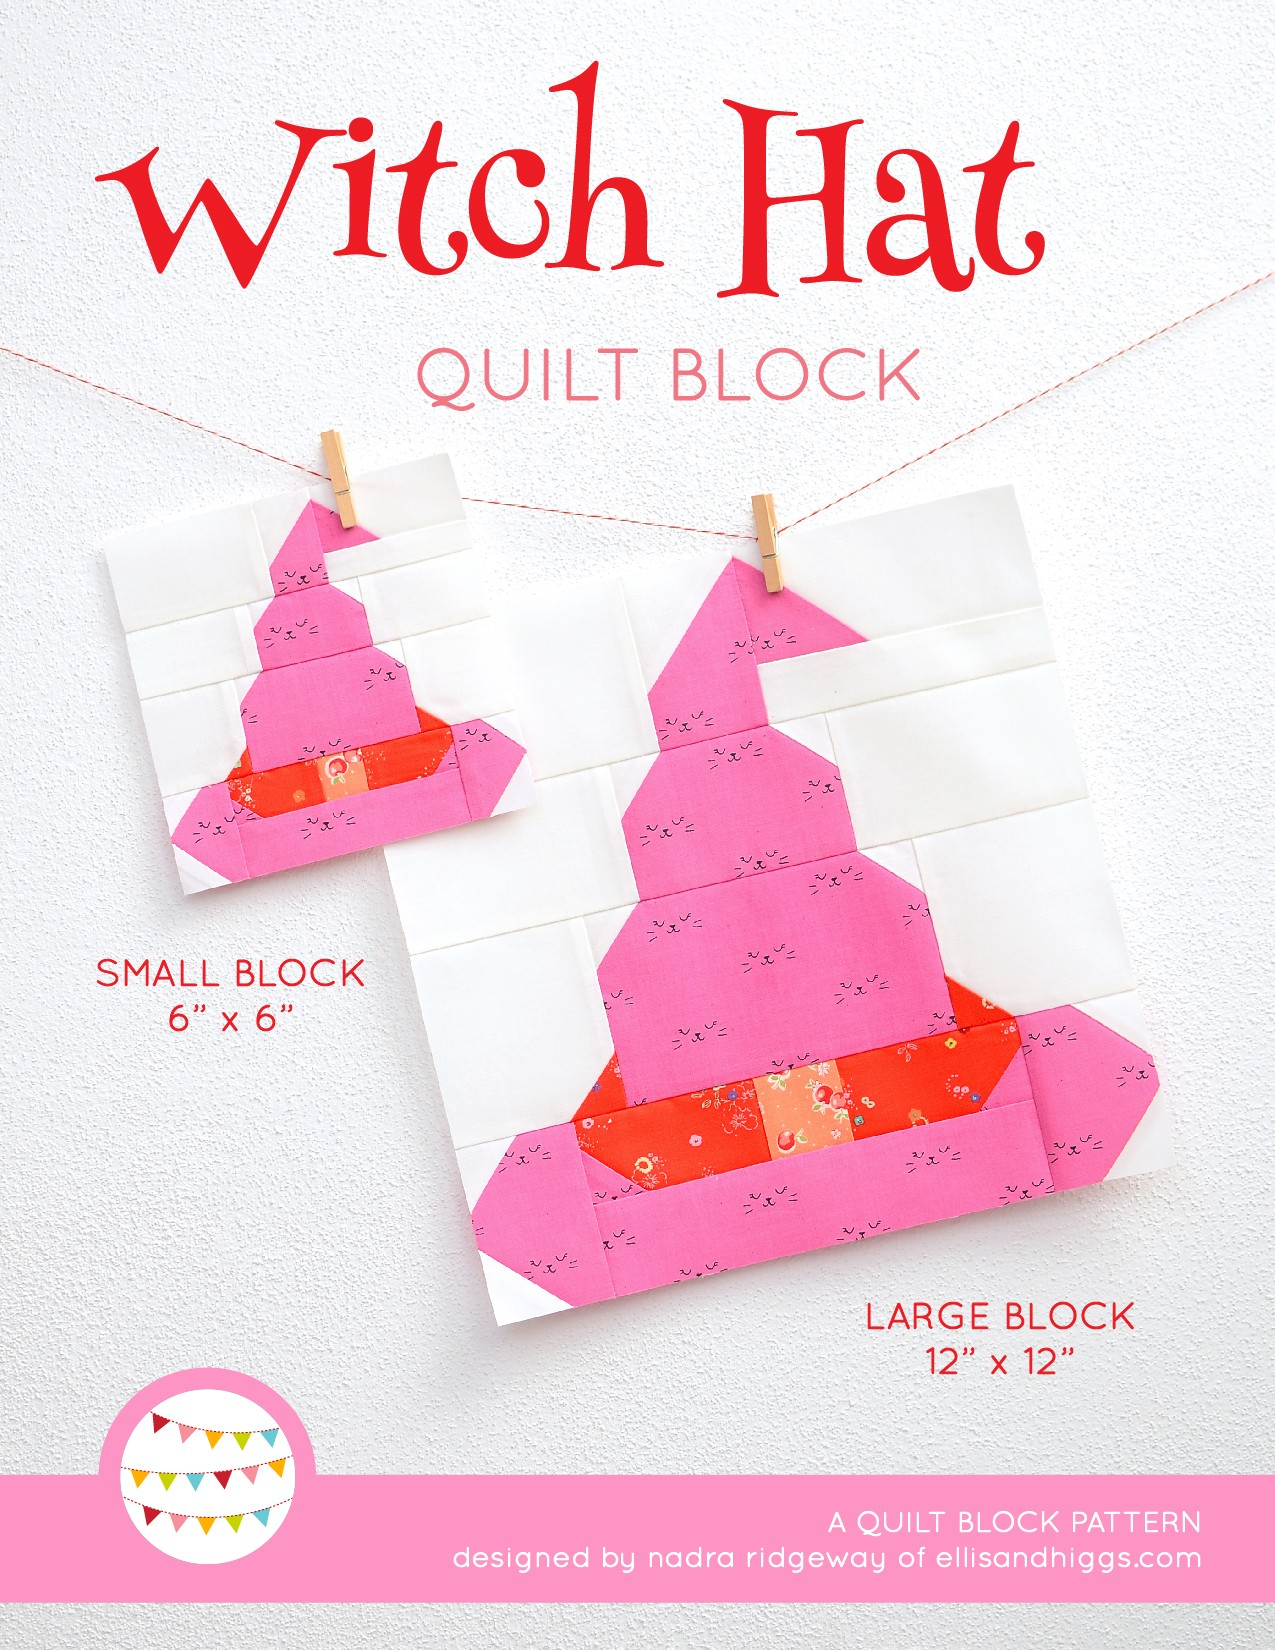 Witch Hat quilt block in two sizes hanging on a wall